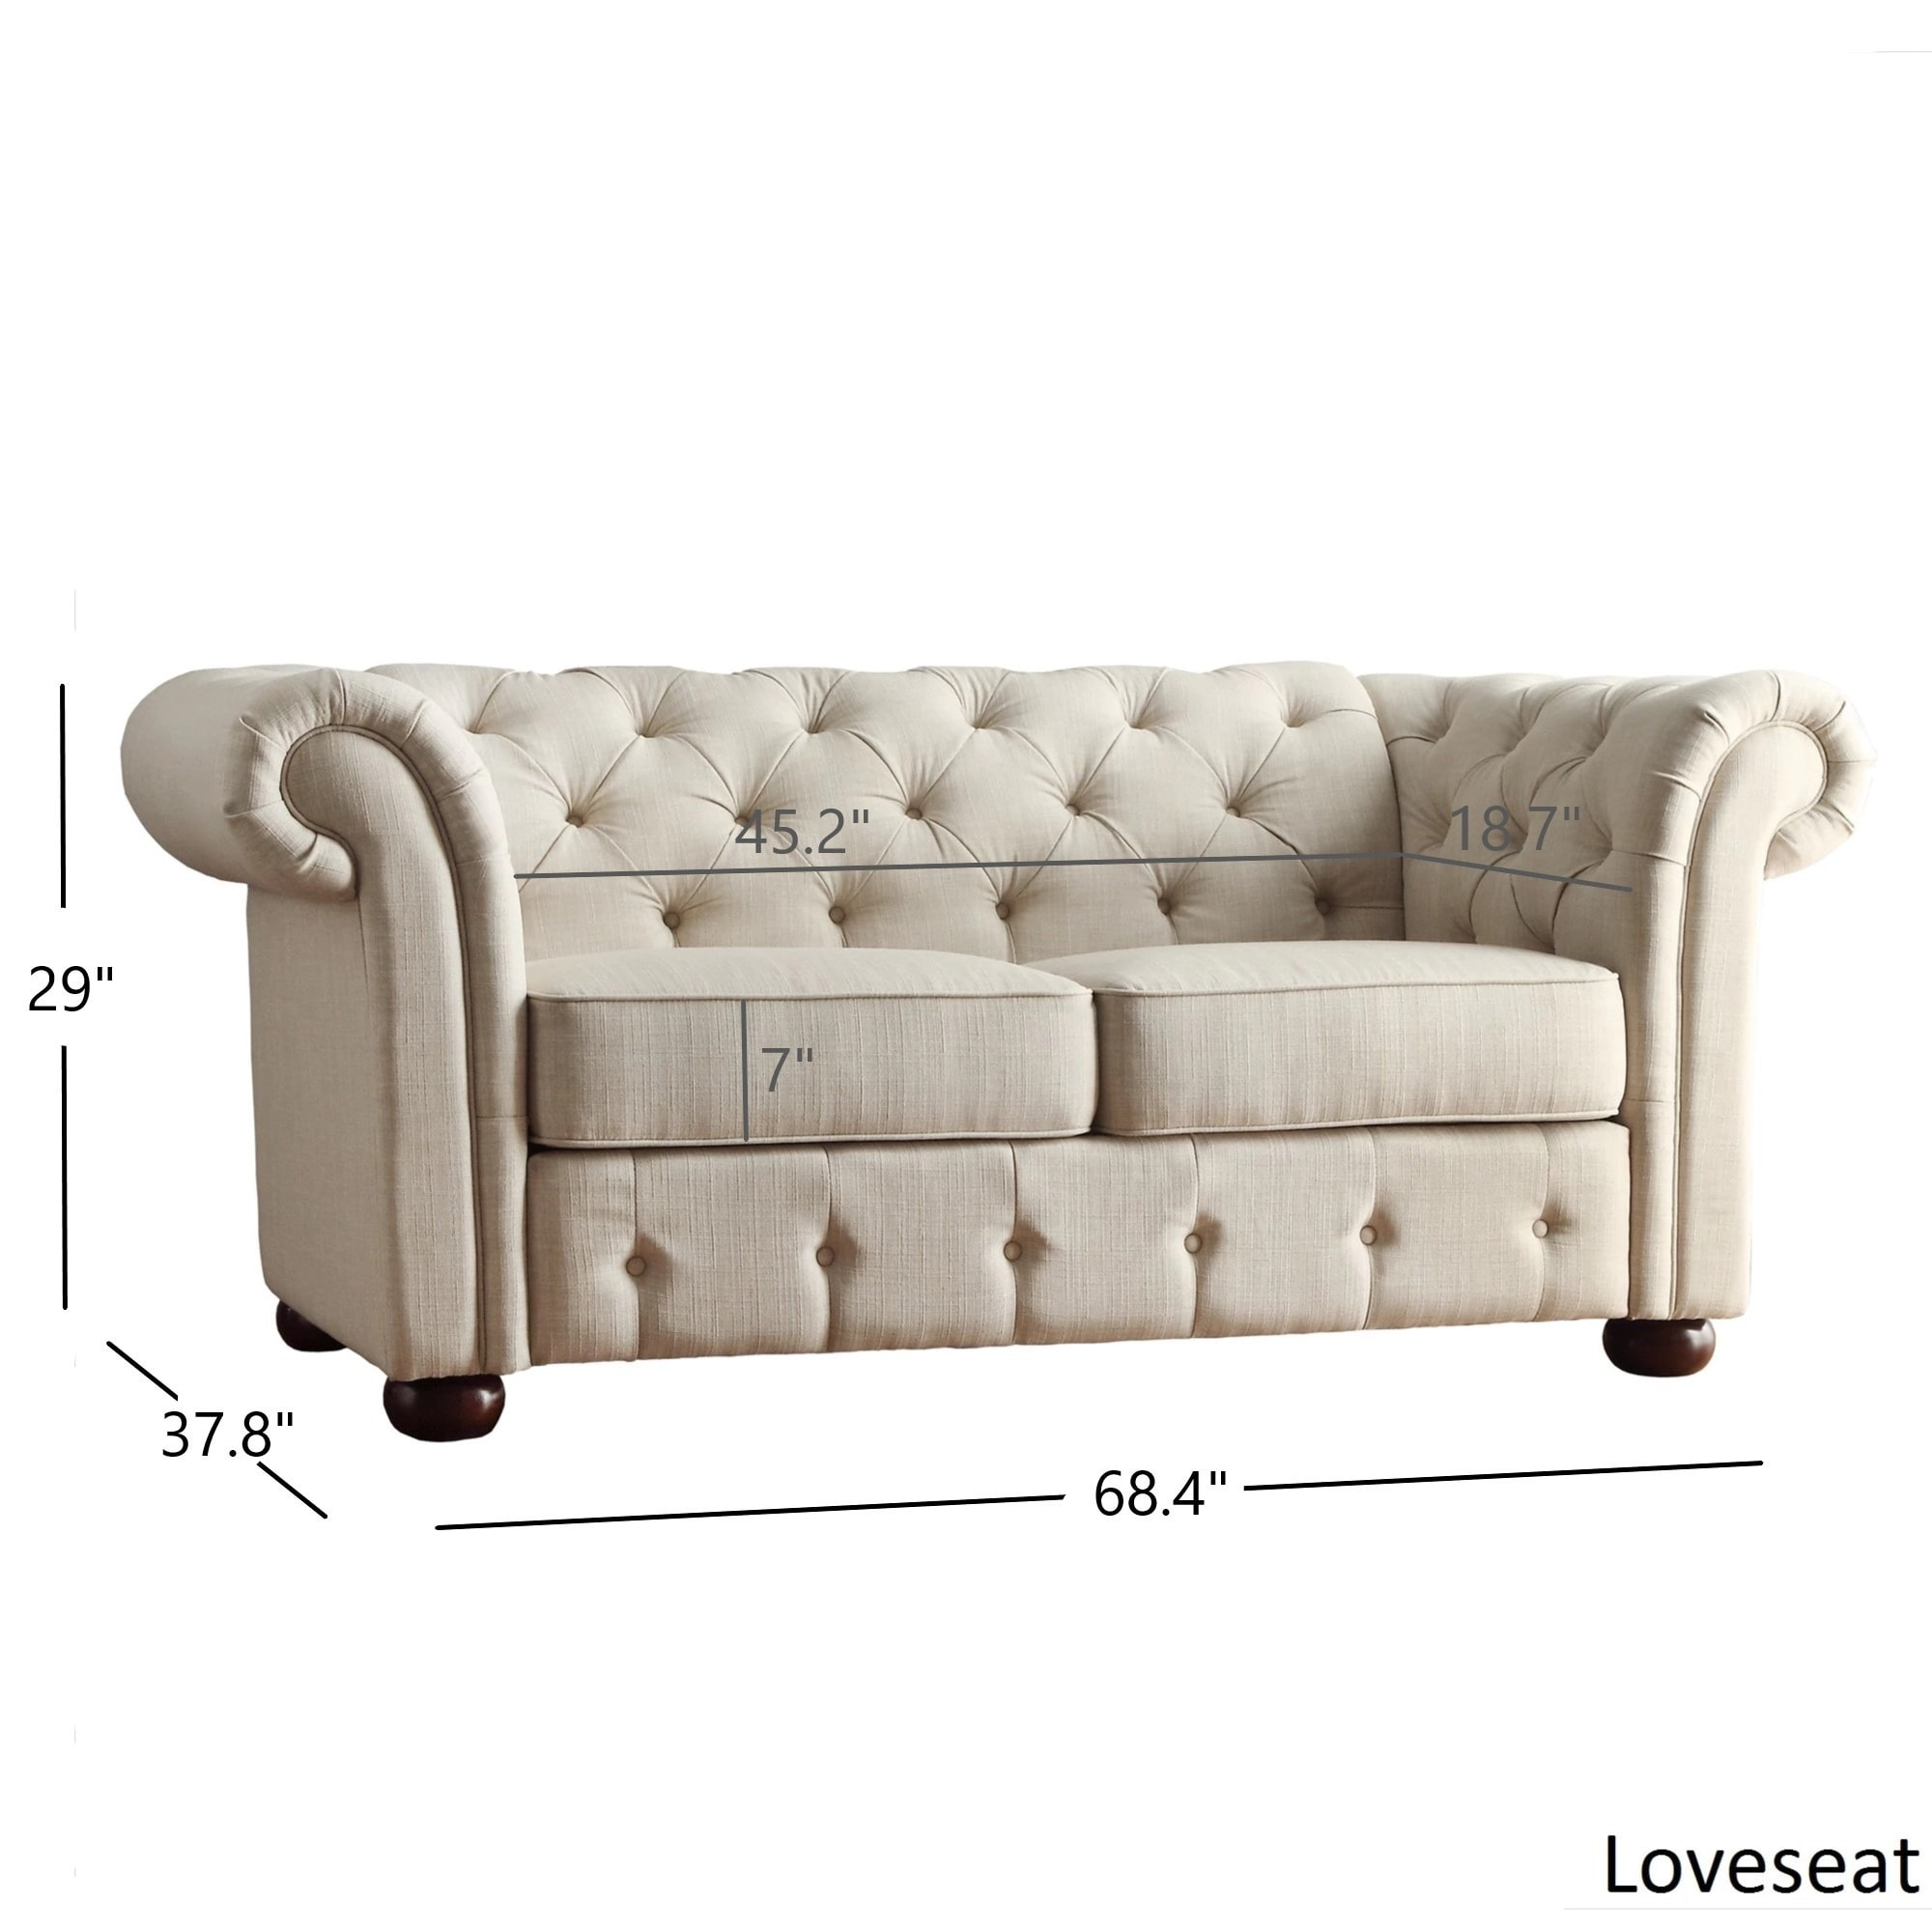 Chesterfield Sofa And Chair Knightsbridge Beige Fabric Button Tufted Chesterfield Sofa And Seating By Inspire Q Artisan